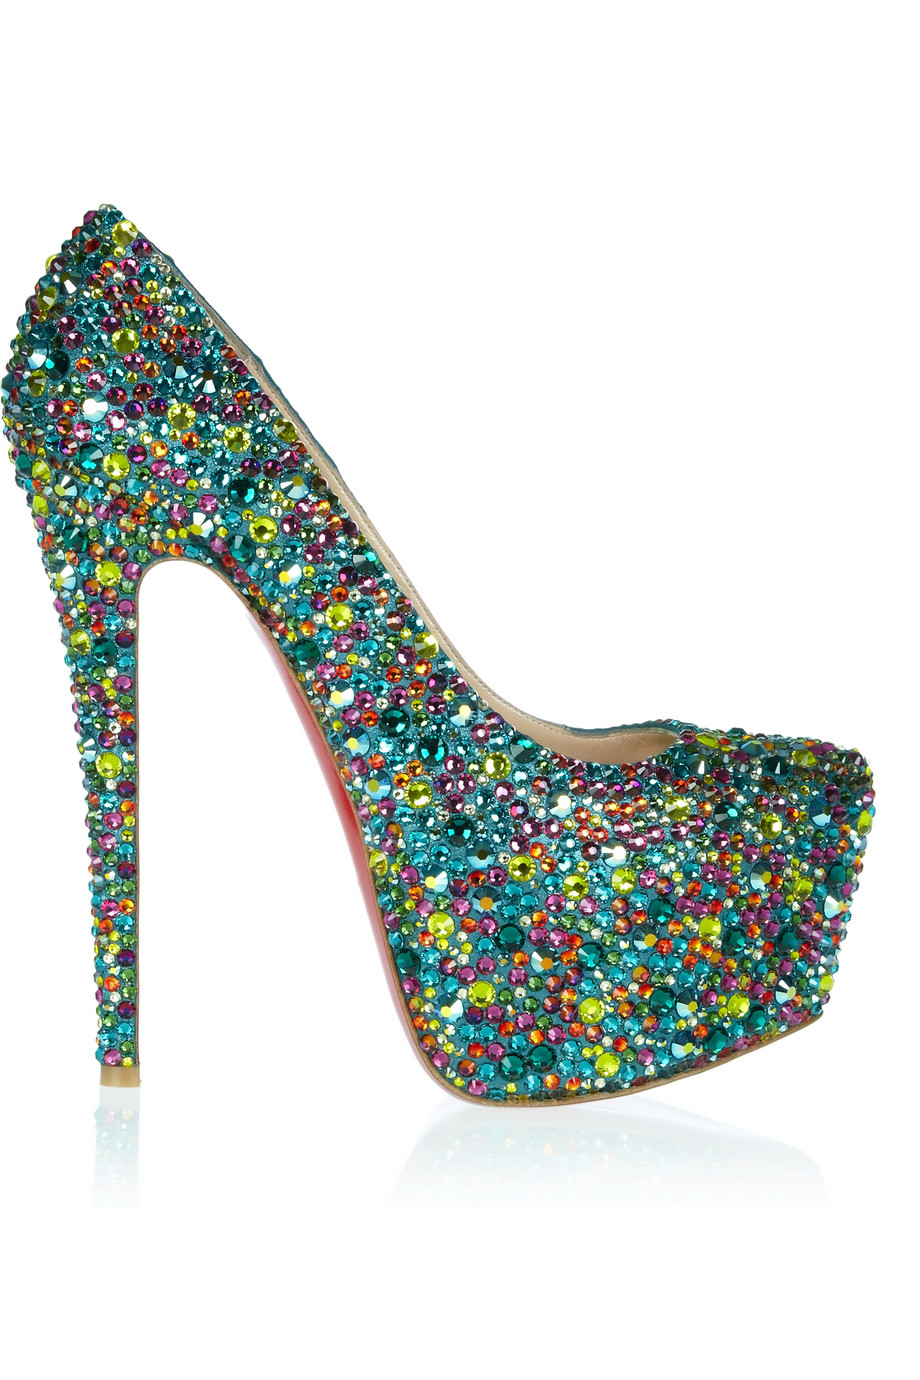 christian louboutin Daffodile 160 pumps | The Little Arts Academy